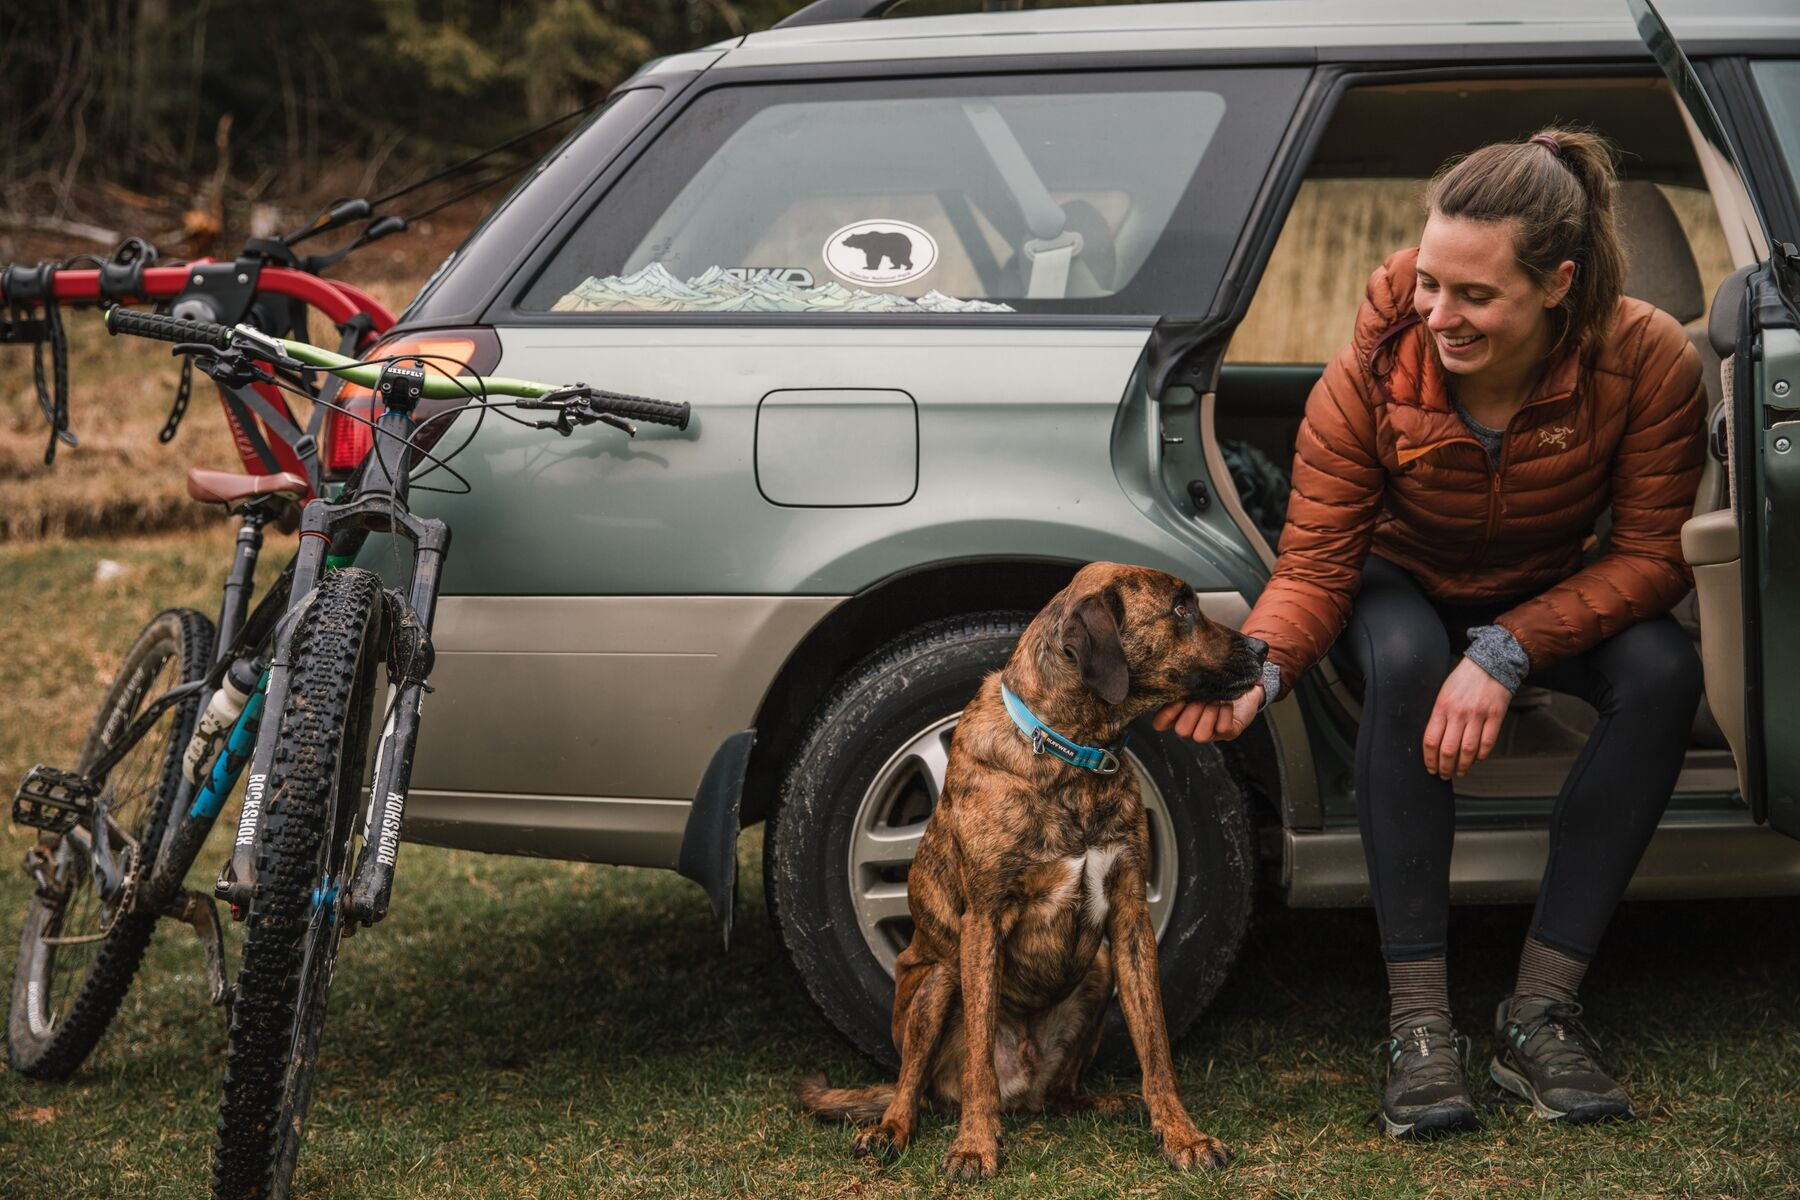 Woman petting dog at the car after mountain bike ride.